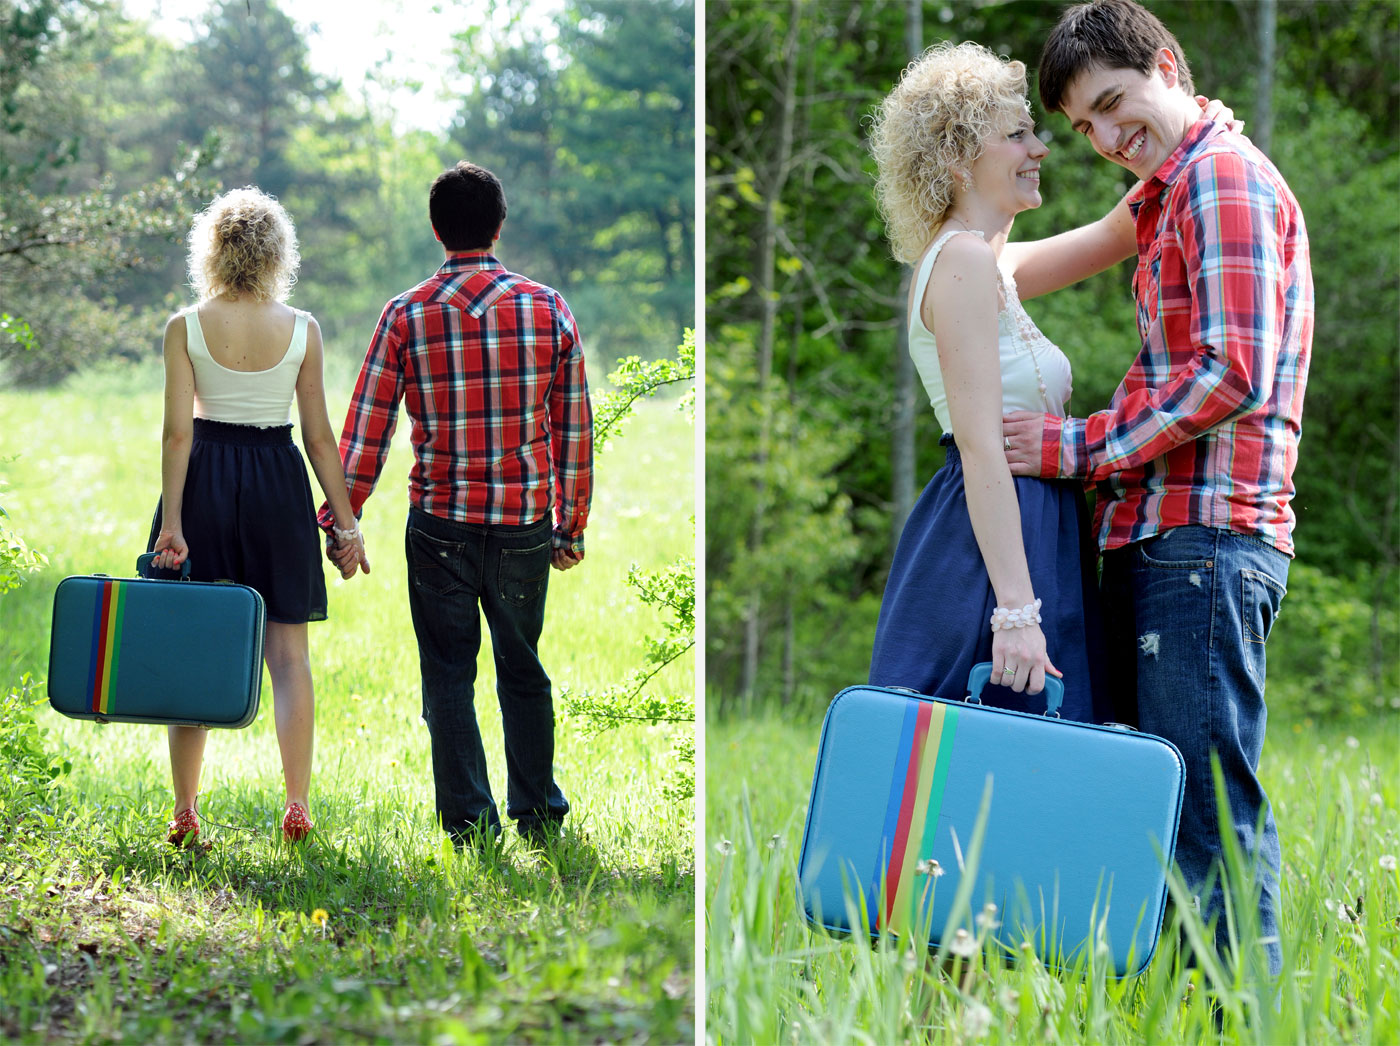 kaylen-aaron-engagement-country-st-clair-michigan-stunning-intimate-rustic-travel-7